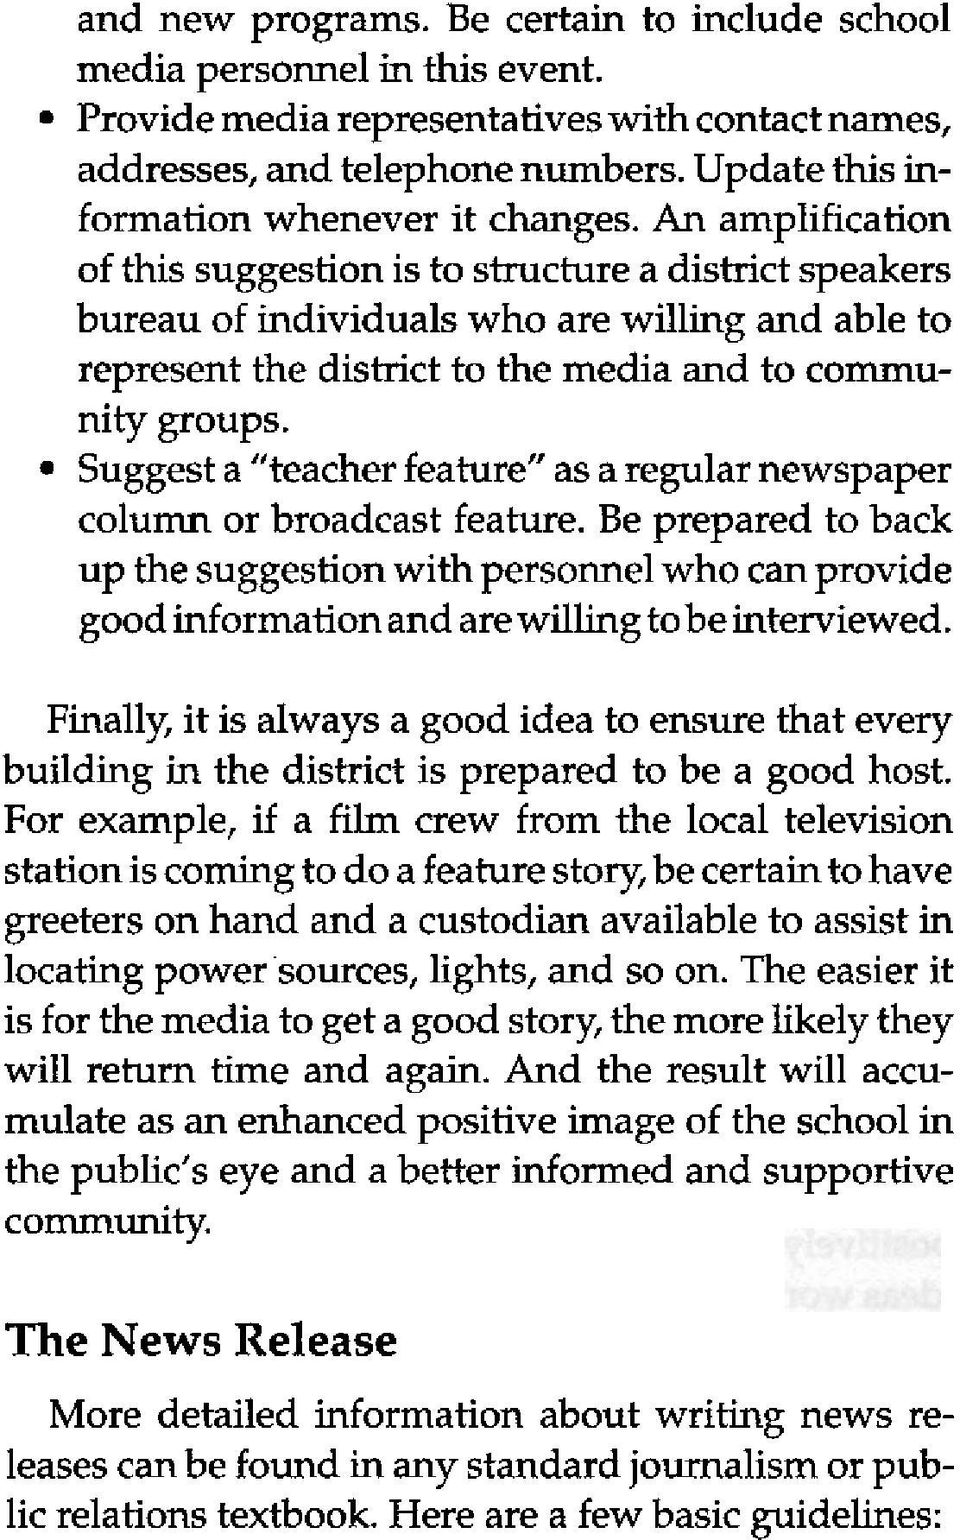 An amplification of this suggestion is to structure a district speakers bureau of individuals who are willing and able to represent the district to the media and to community groups.